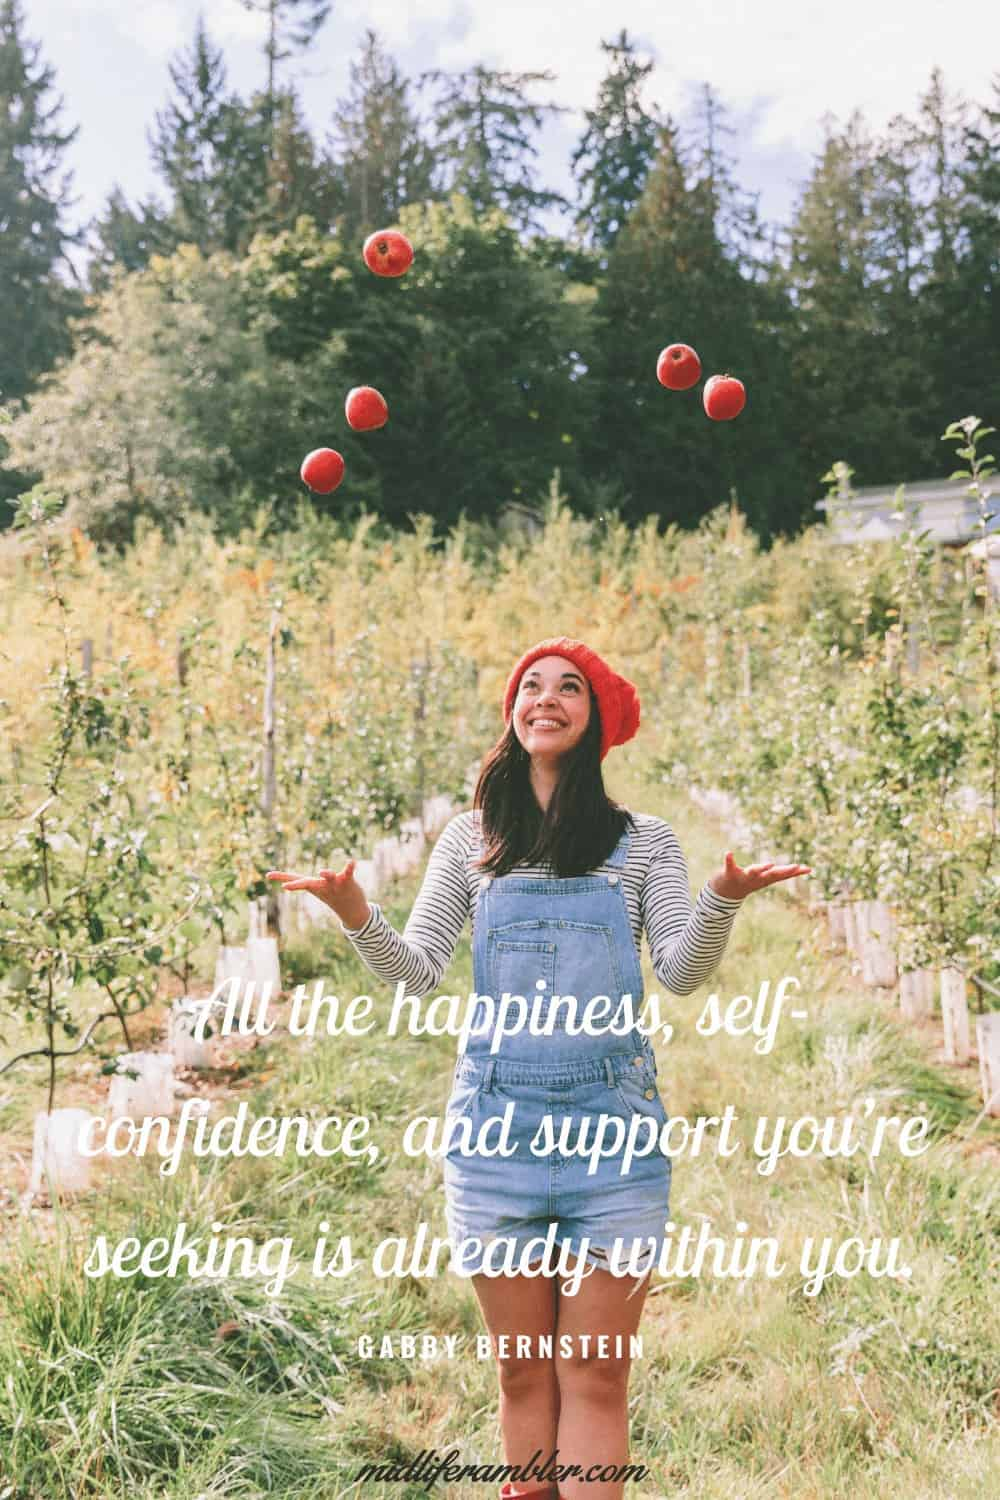 50 Self-Compassion Quotes and Affirmations to Help You Learn to Love and Accept Yourself - All the happiness, self-confidence, and support you're seeking is already within you. – Gabby Bernstein